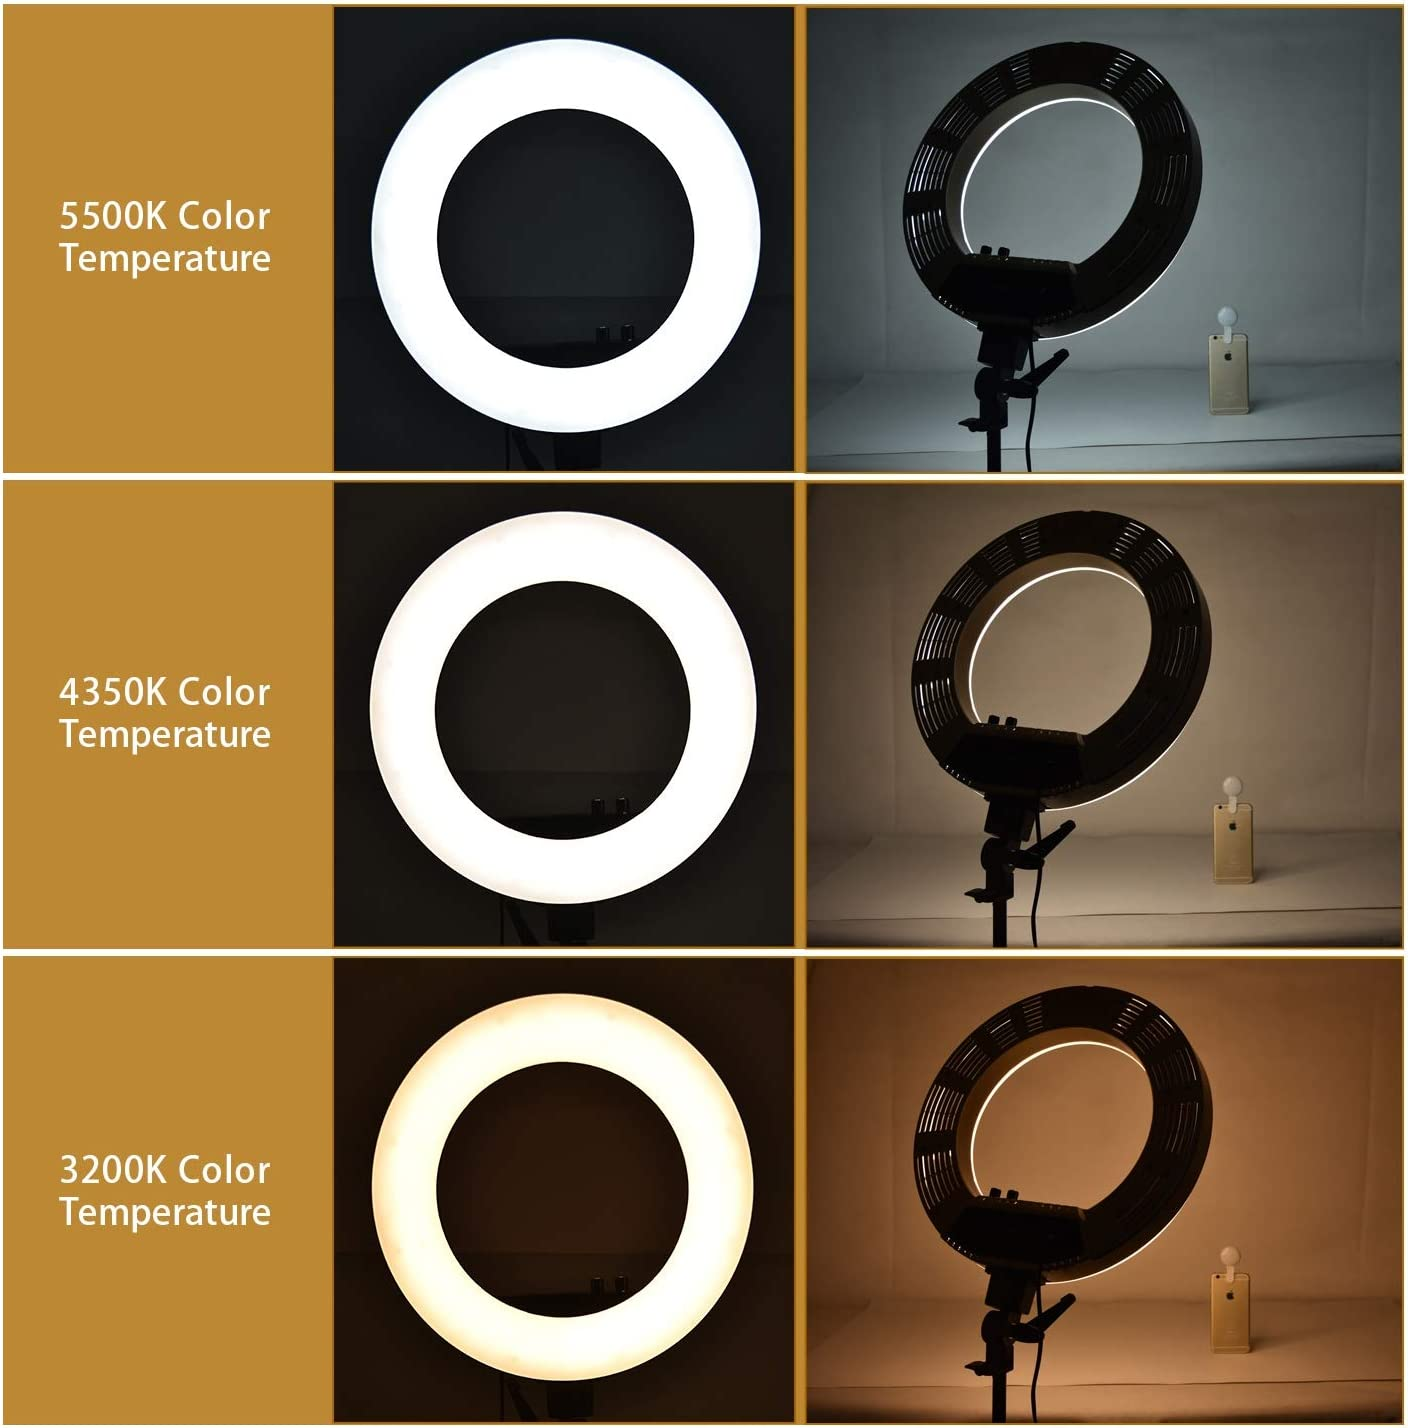 HULYZLB LED Ring LightCamera Photo Video Lightning Kit,18in Outer 80W 5800K Dimmable LED Ring Light with Stand for YouTube//Vine Self-Portrait